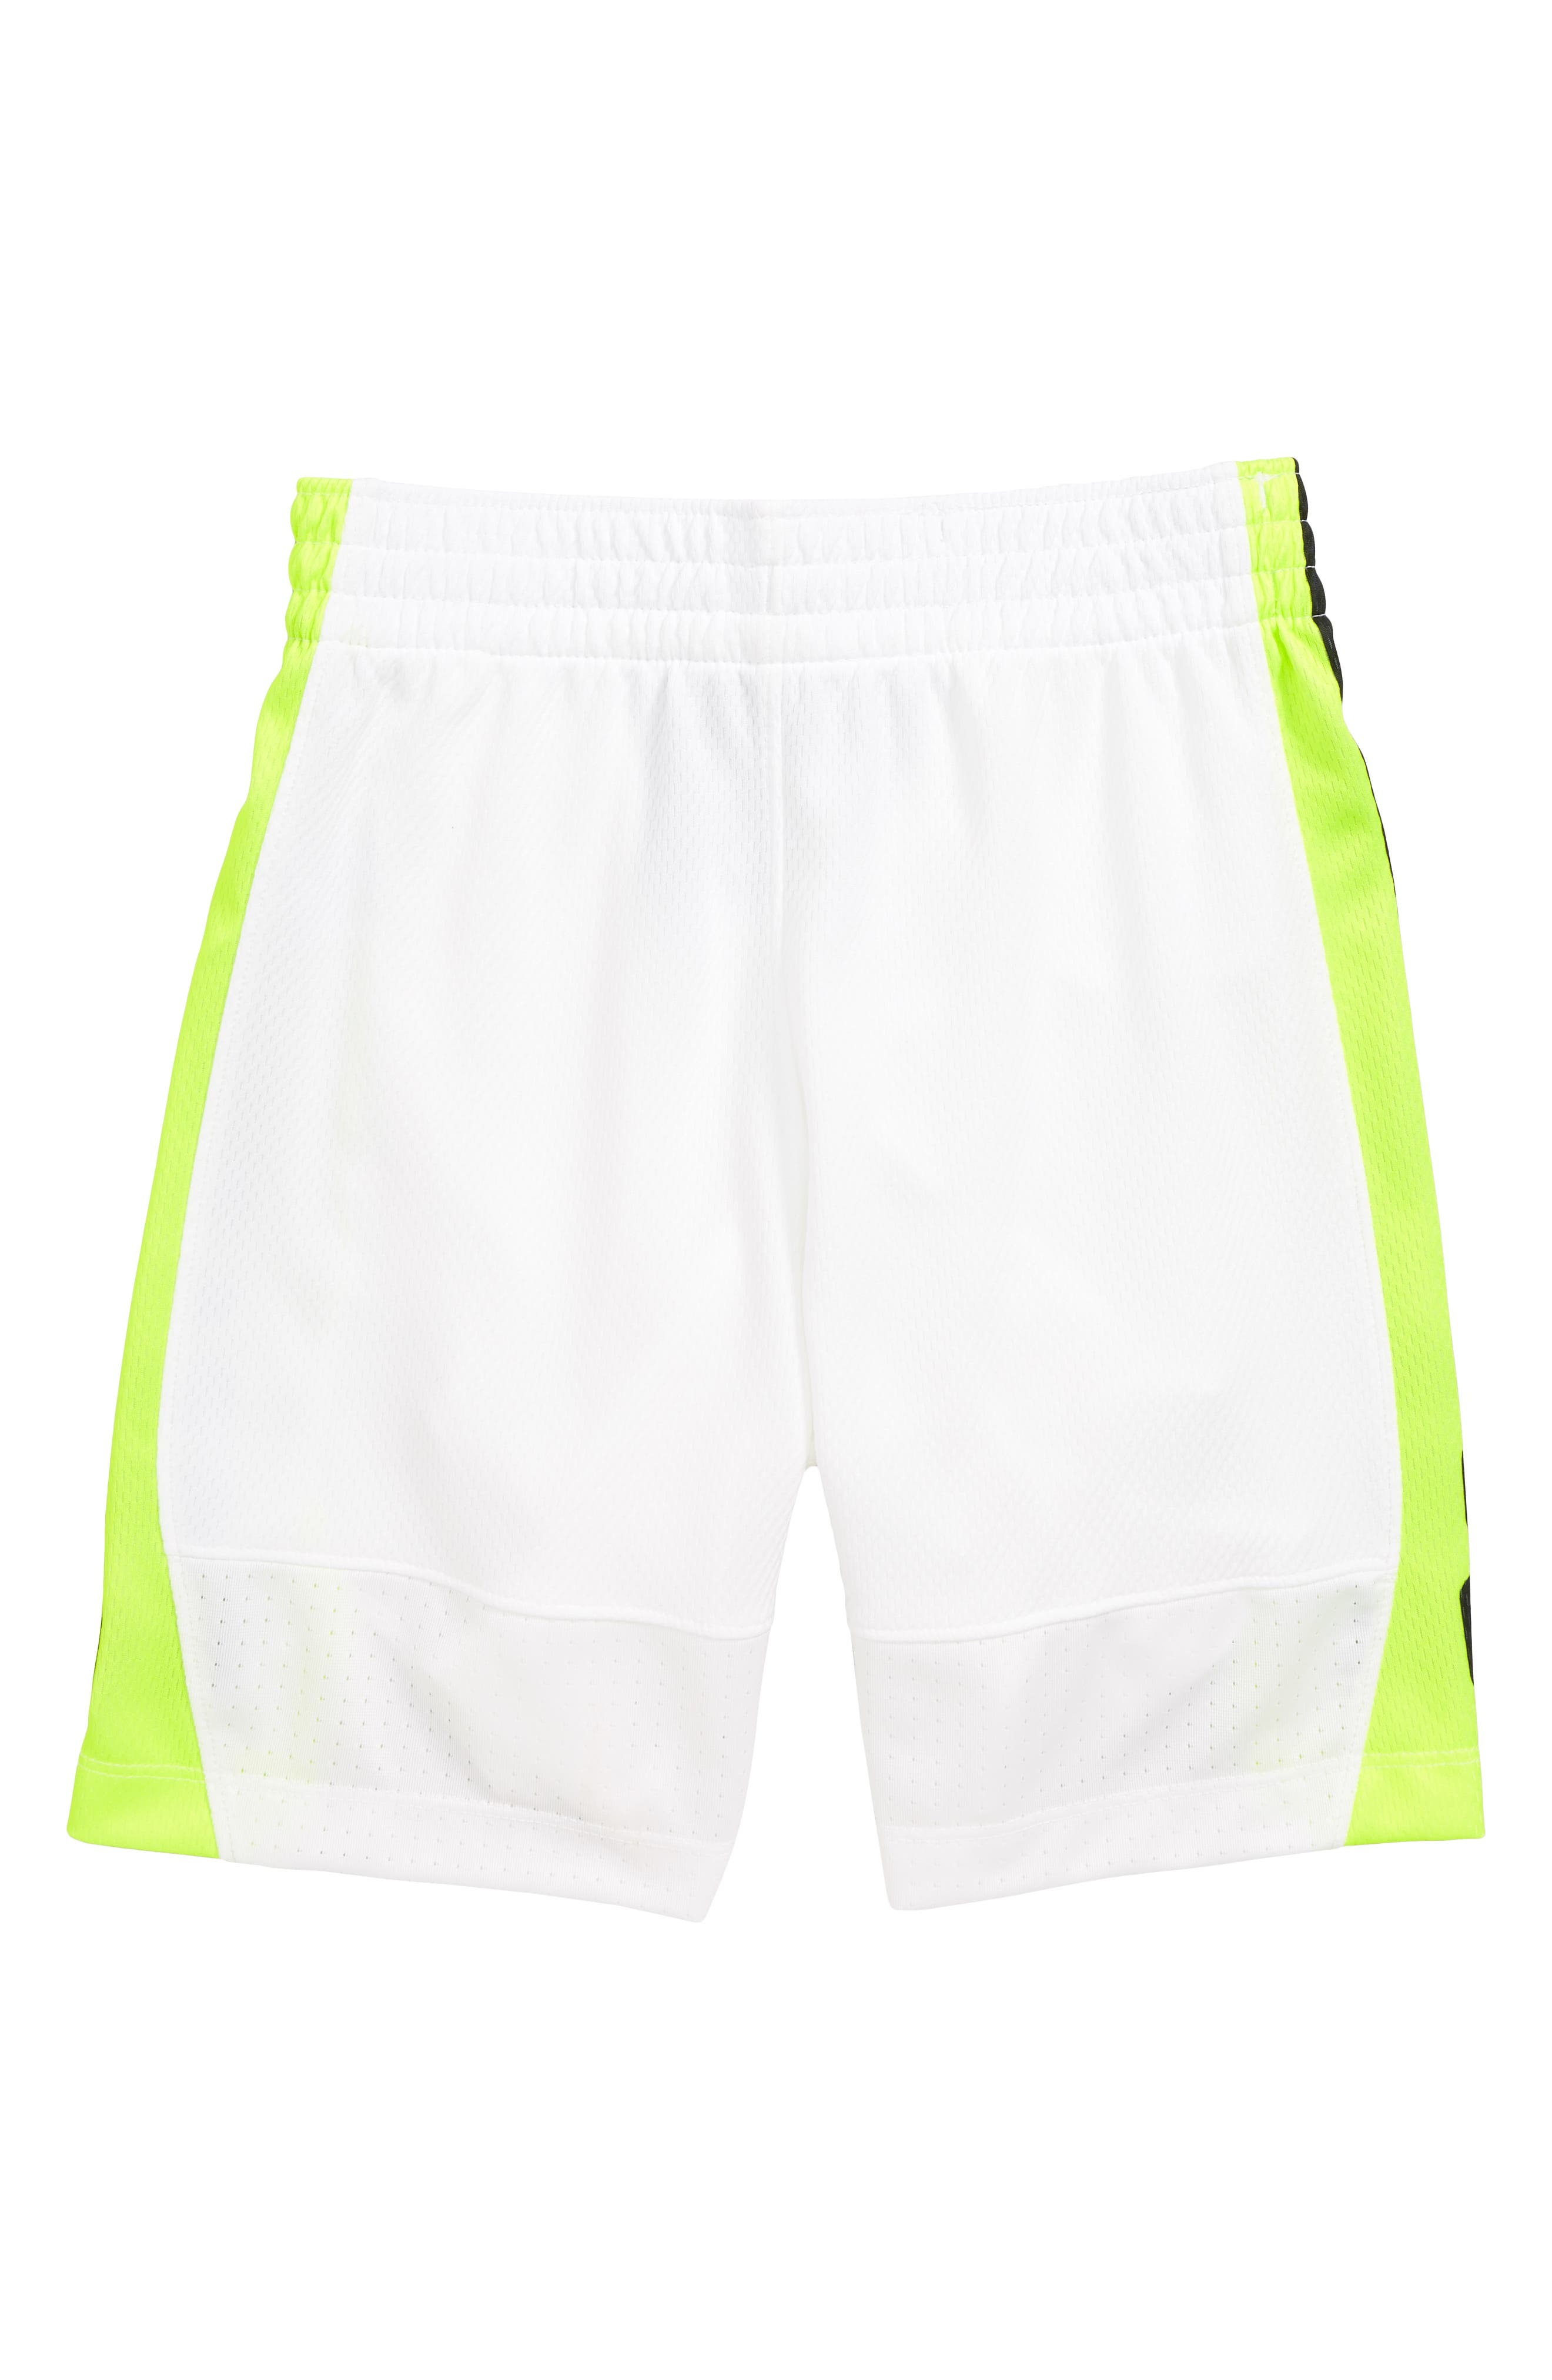 Dry Elite Basketball Shorts,                             Alternate thumbnail 66, color,